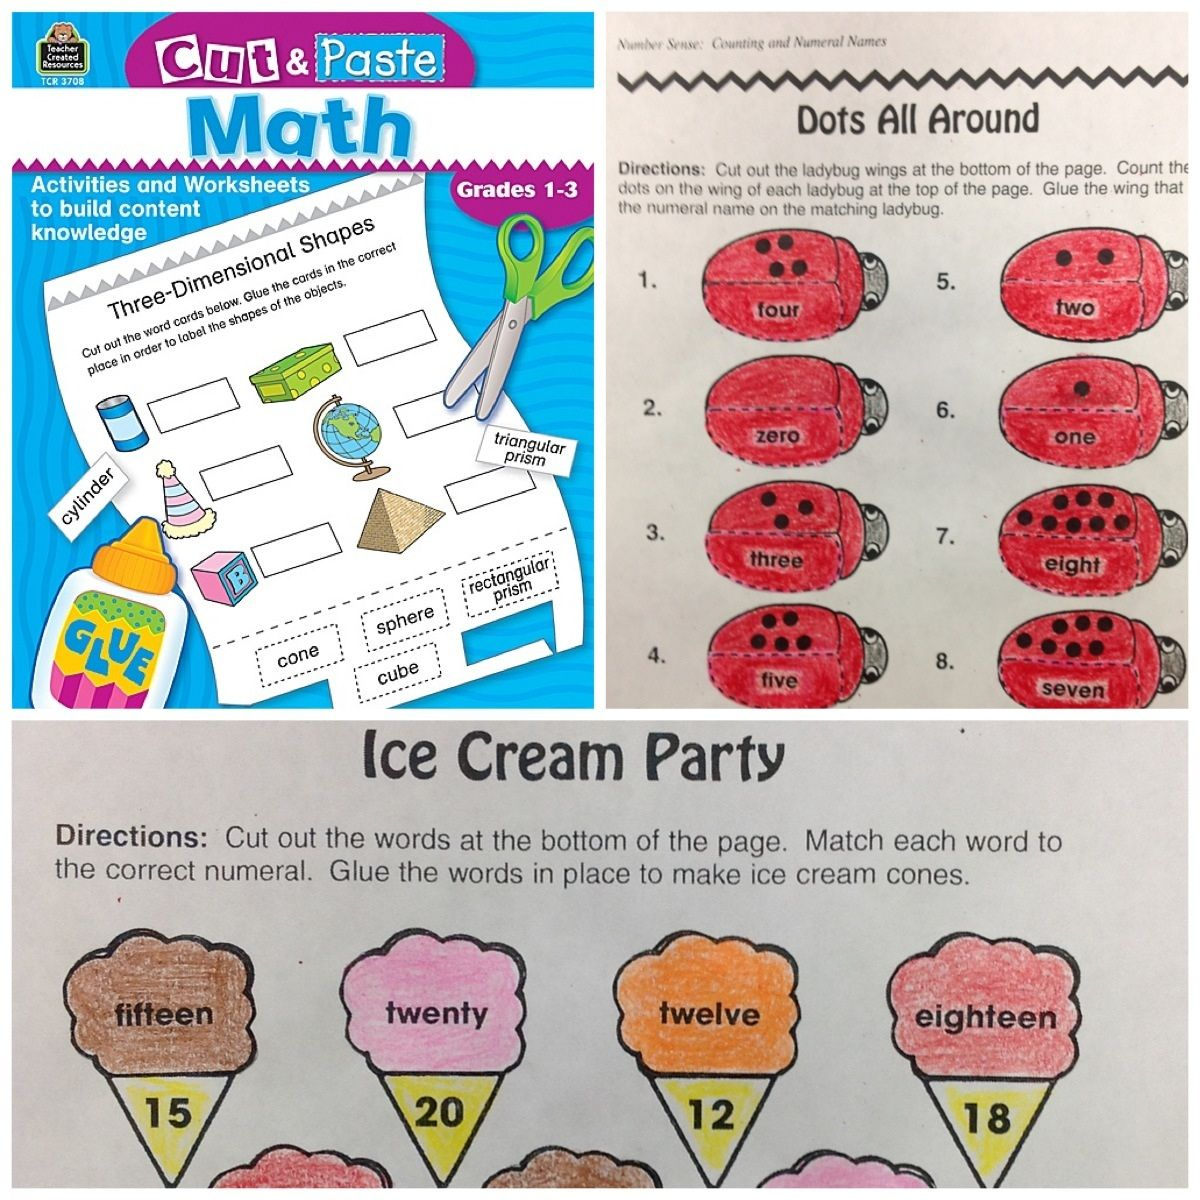 Cut and Paste: Math | Worksheets, Math and Students